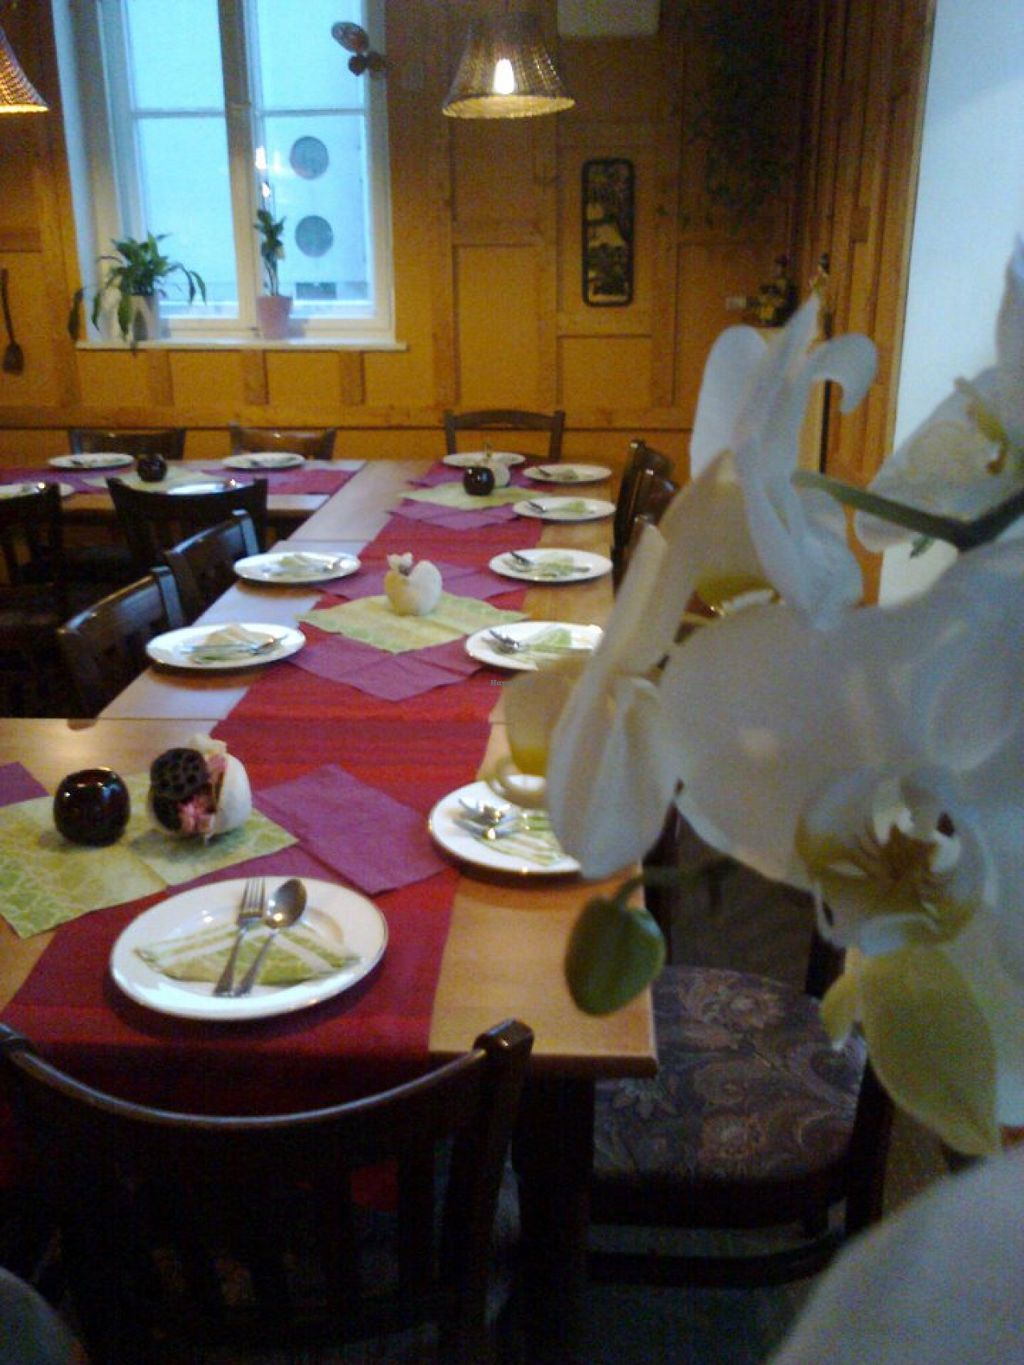 """Photo of 3 Naree Thai Cuisine  by <a href=""""/members/profile/community"""">community</a> <br/>3 Naree Thai Cuisine <br/> July 29, 2015  - <a href='/contact/abuse/image/61089/111429'>Report</a>"""